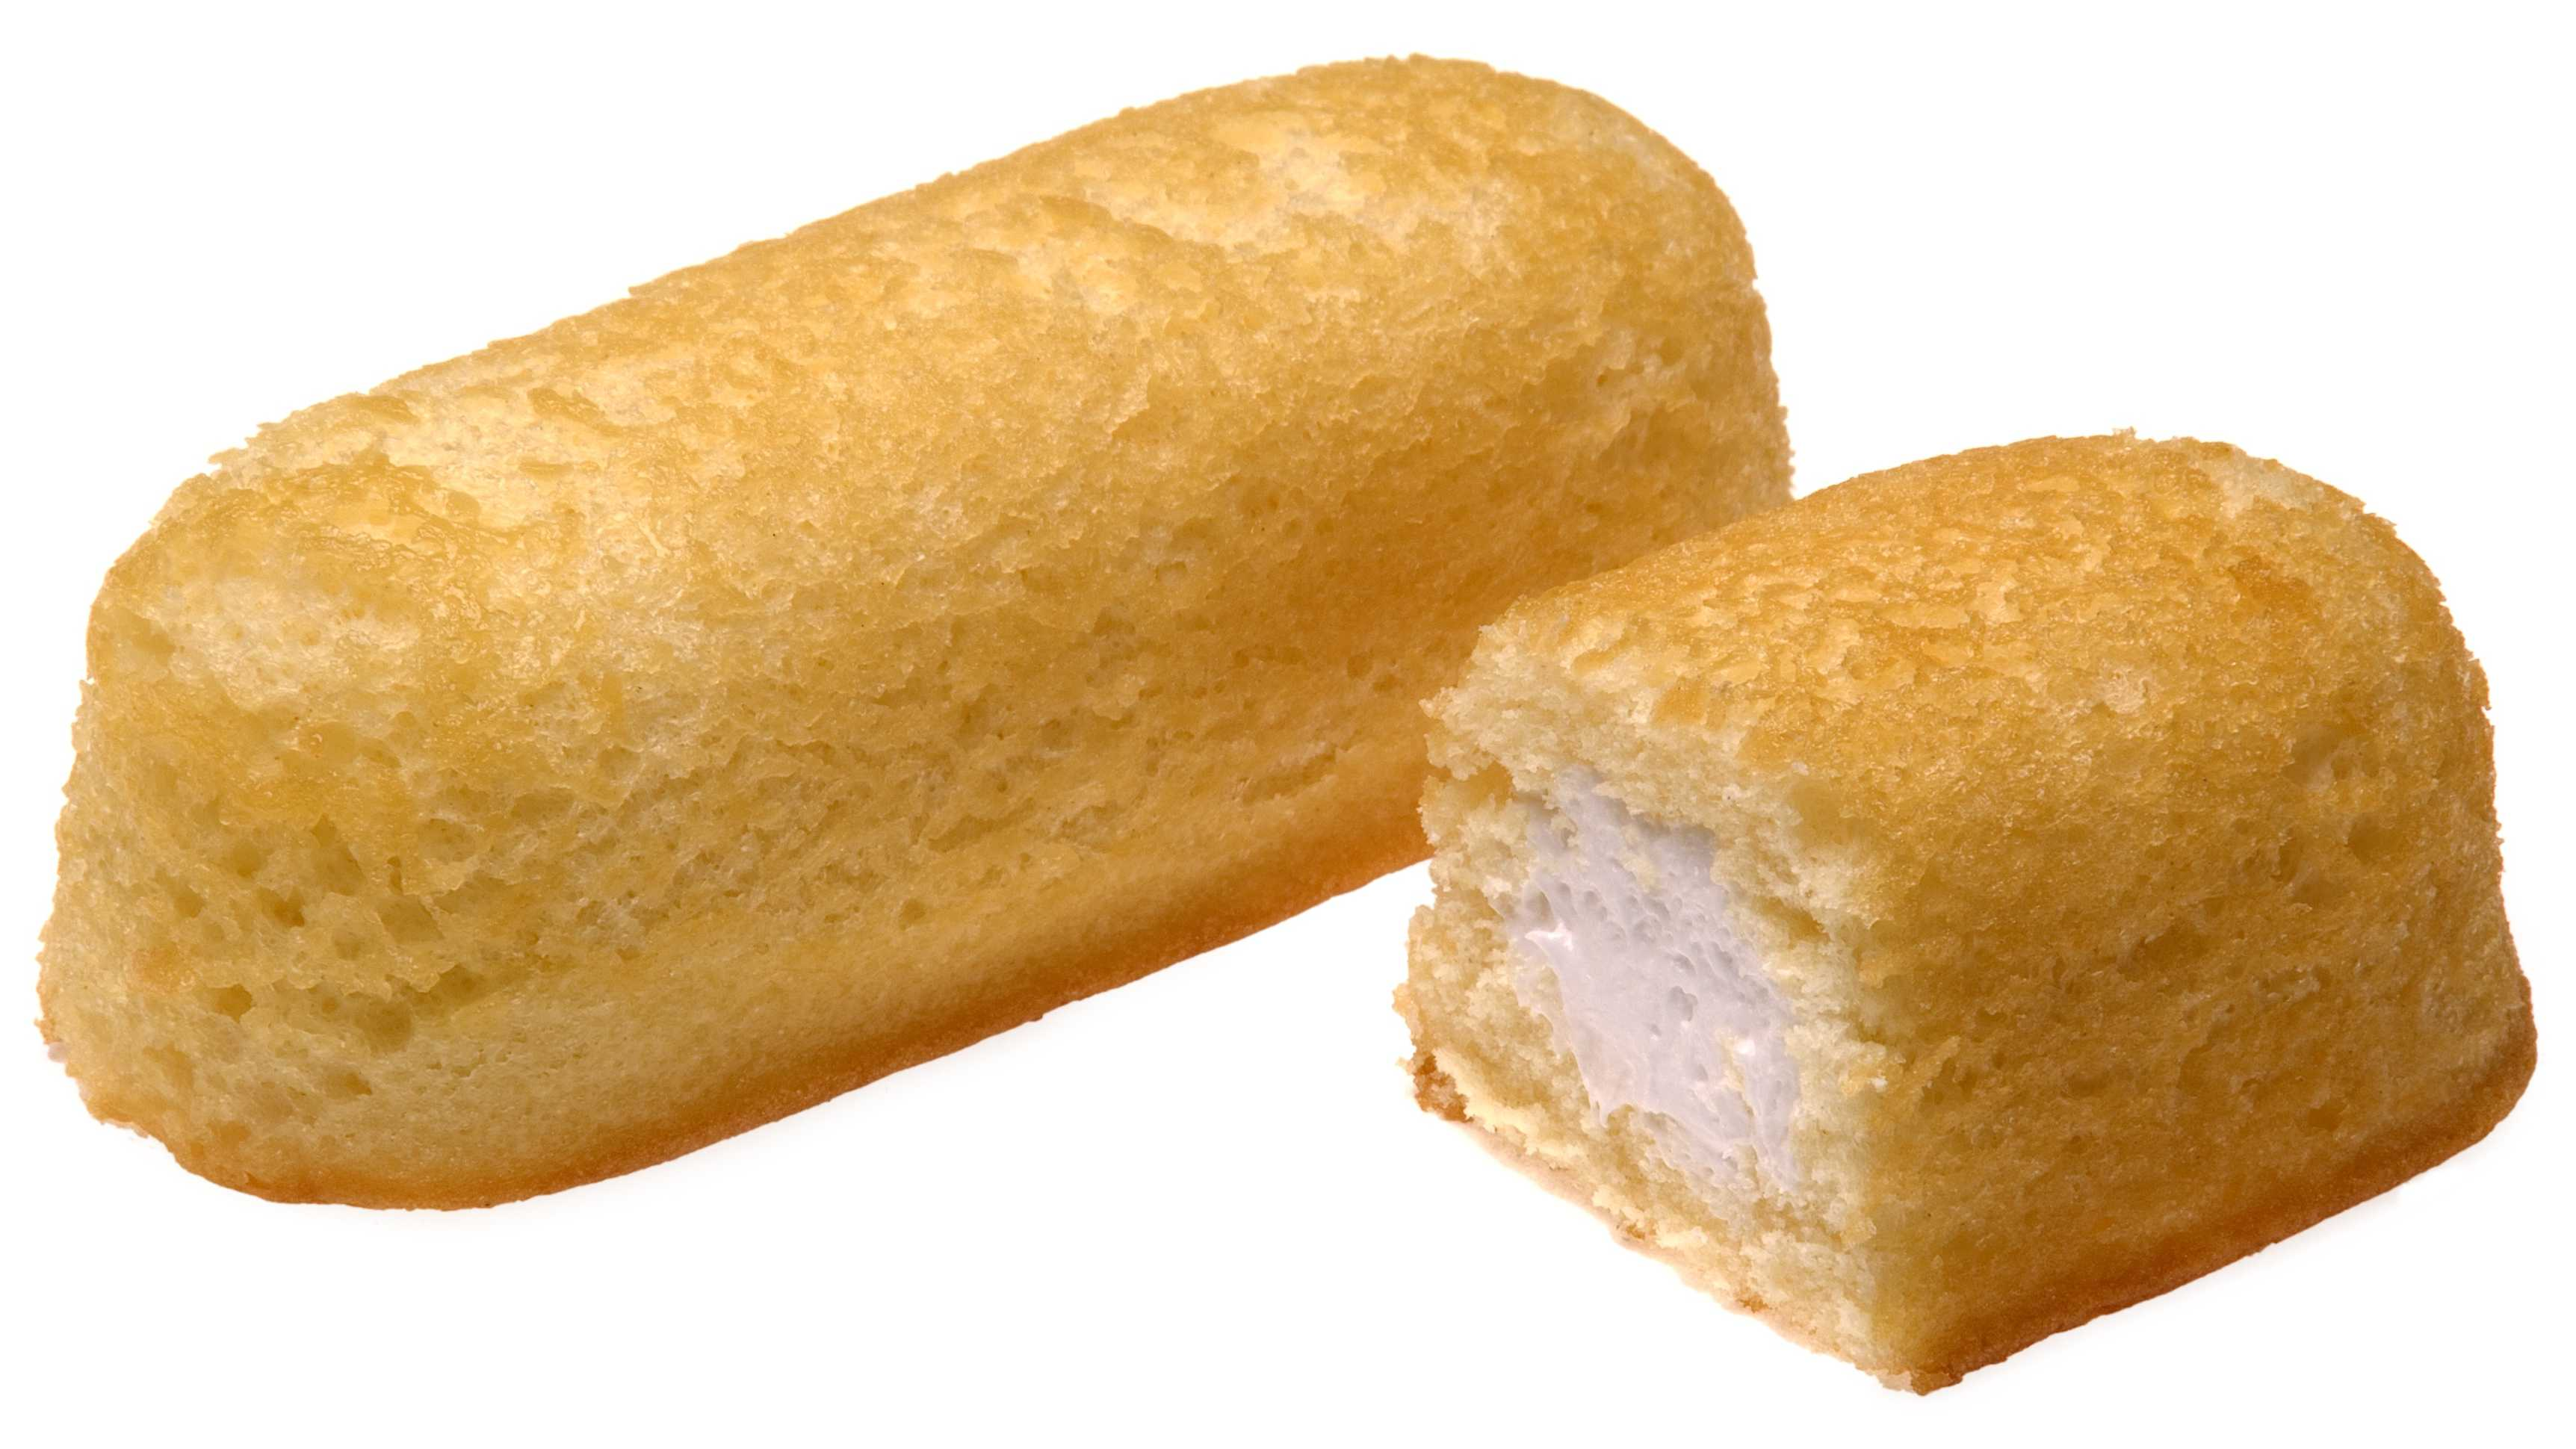 Hostess declared it was going out of business and selling its brands in November.